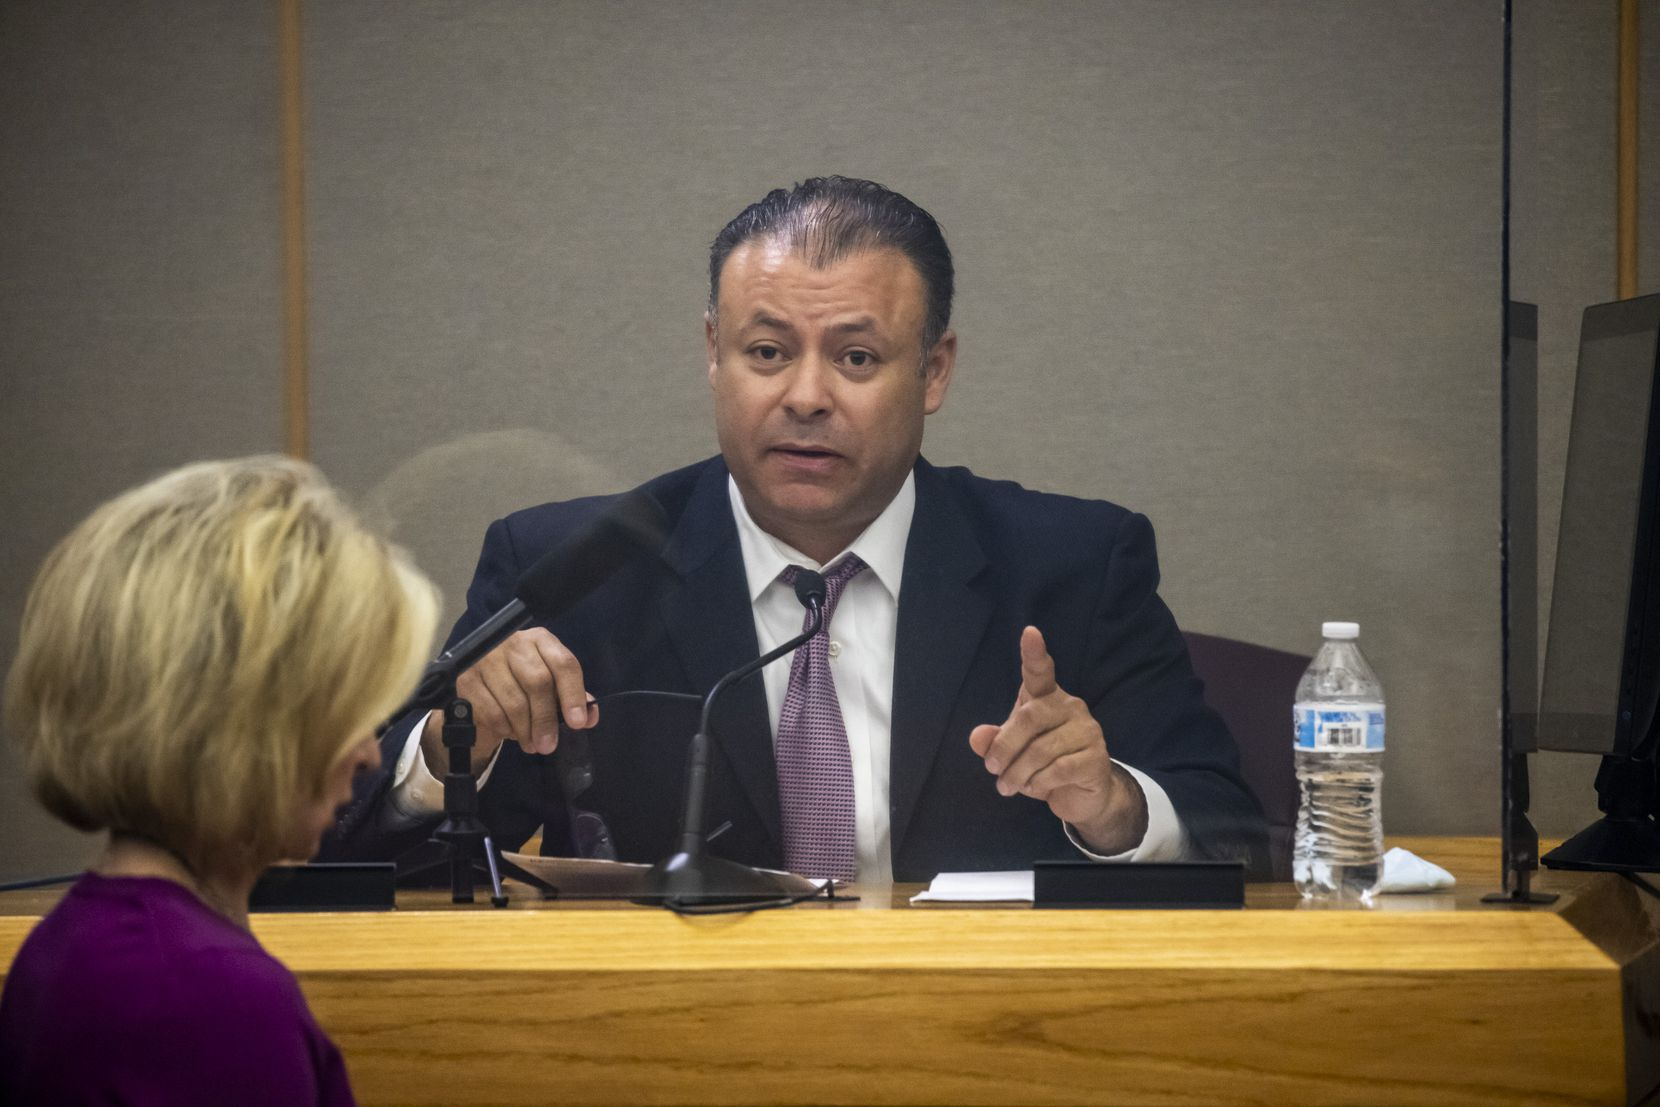 Homicide Detective Esteban Montenegro answered questions from a prosecutor Wednesday during a court hearing for former Dallas police Officer Bryan Riser.